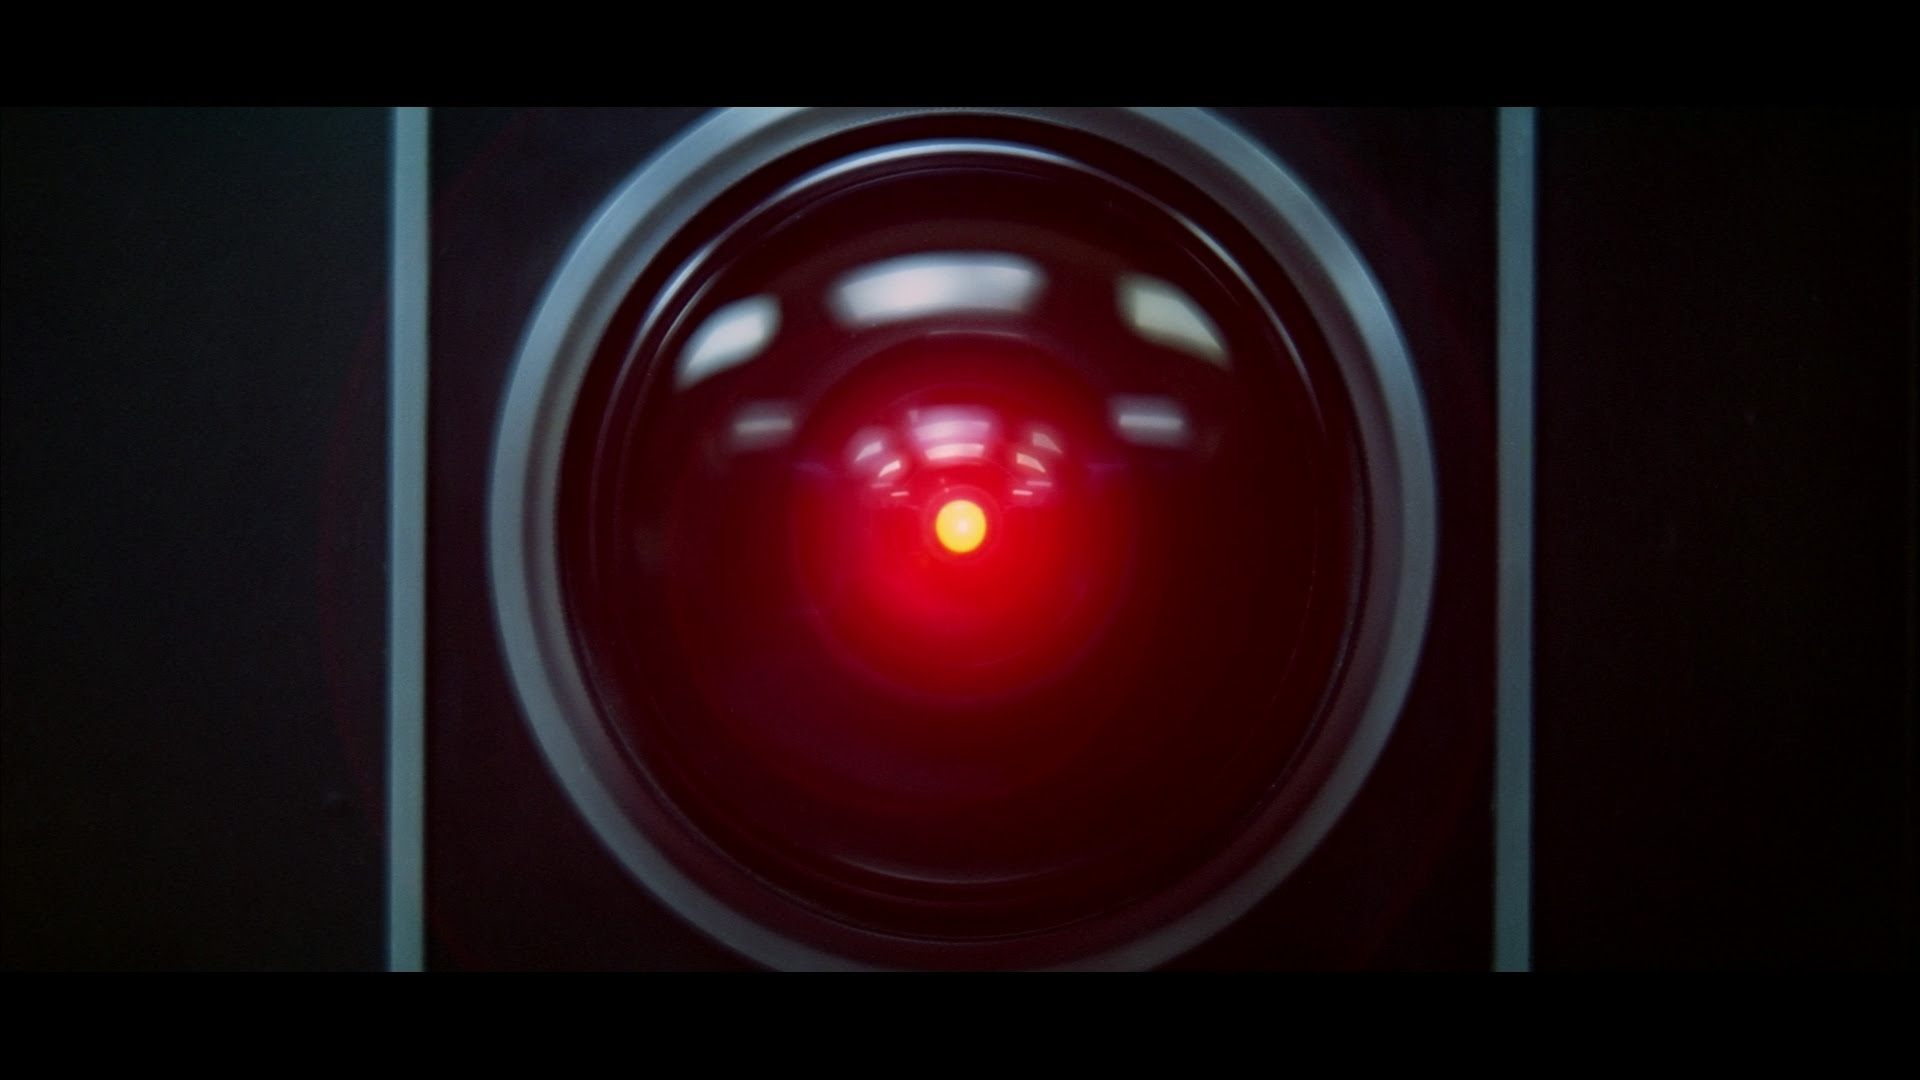 2001 A Space Odyssey Hal9000 1920x1080 Wallpaper High Quality